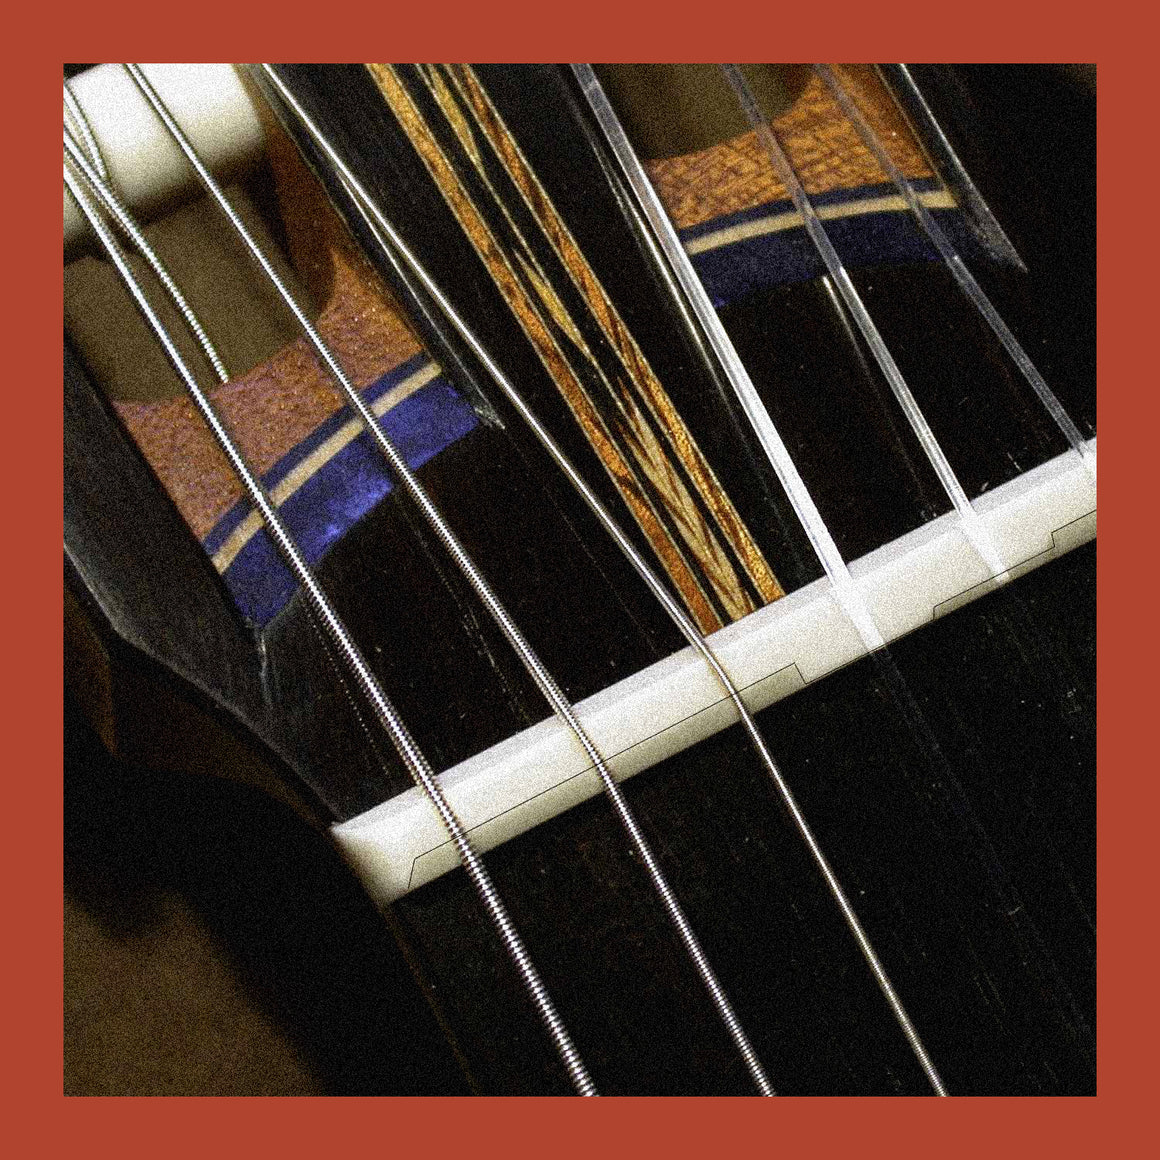 Smythe Nylon Guitar (Loop Pack) [Royalty-Free]